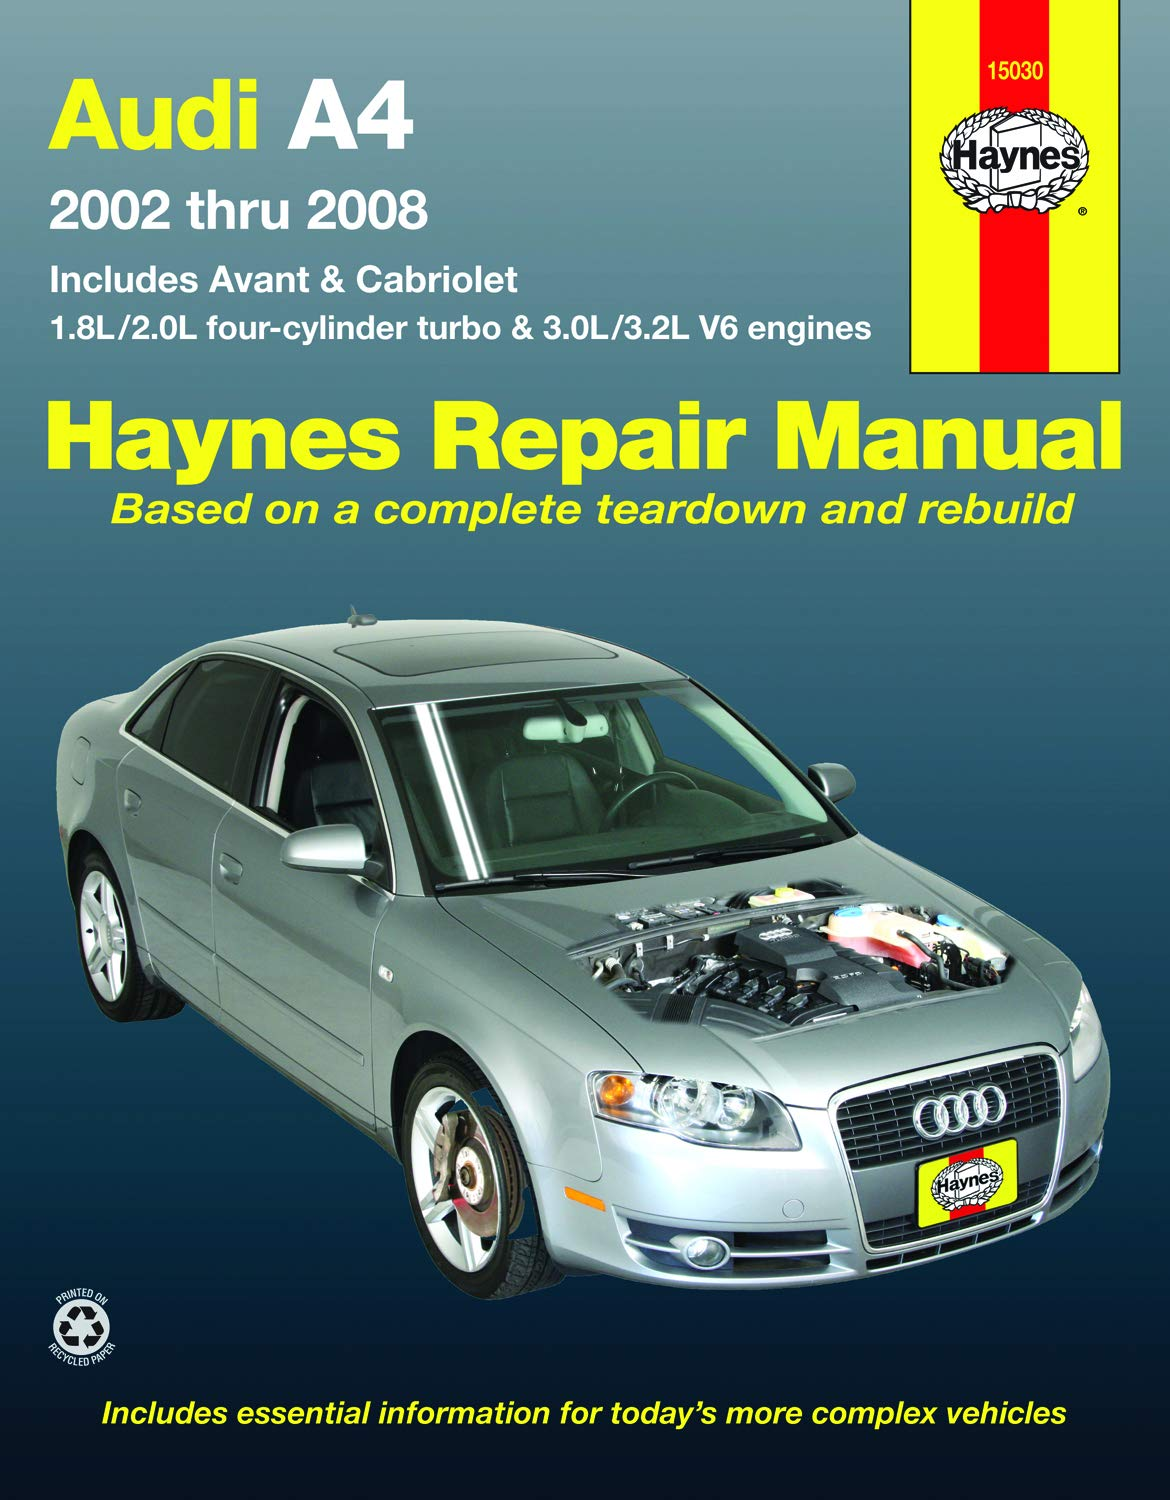 Audi A4 Sedan, Avant, & Cabriolet 2002-2008 Haynes Repair Manual USA Haynes Automotive Repair Manual: Amazon.es: Haynes Publishing: Libros en idiomas ...